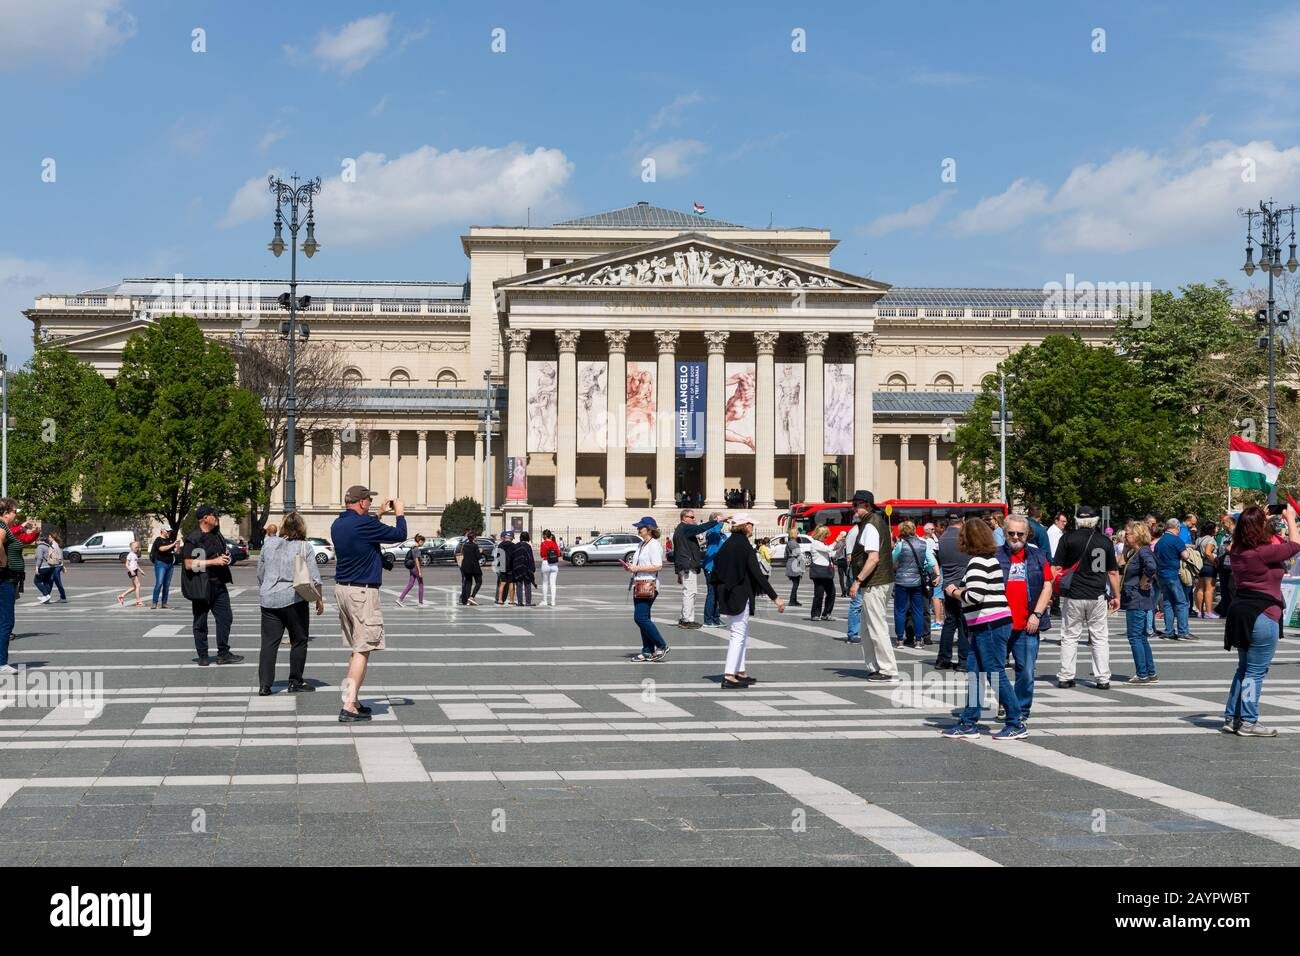 Budapest, Hungary - 25 April 2019: Heroes Square monument and tourist in Budapest city. The square one of the most-visited attractions in Budapest squ Stock Photo